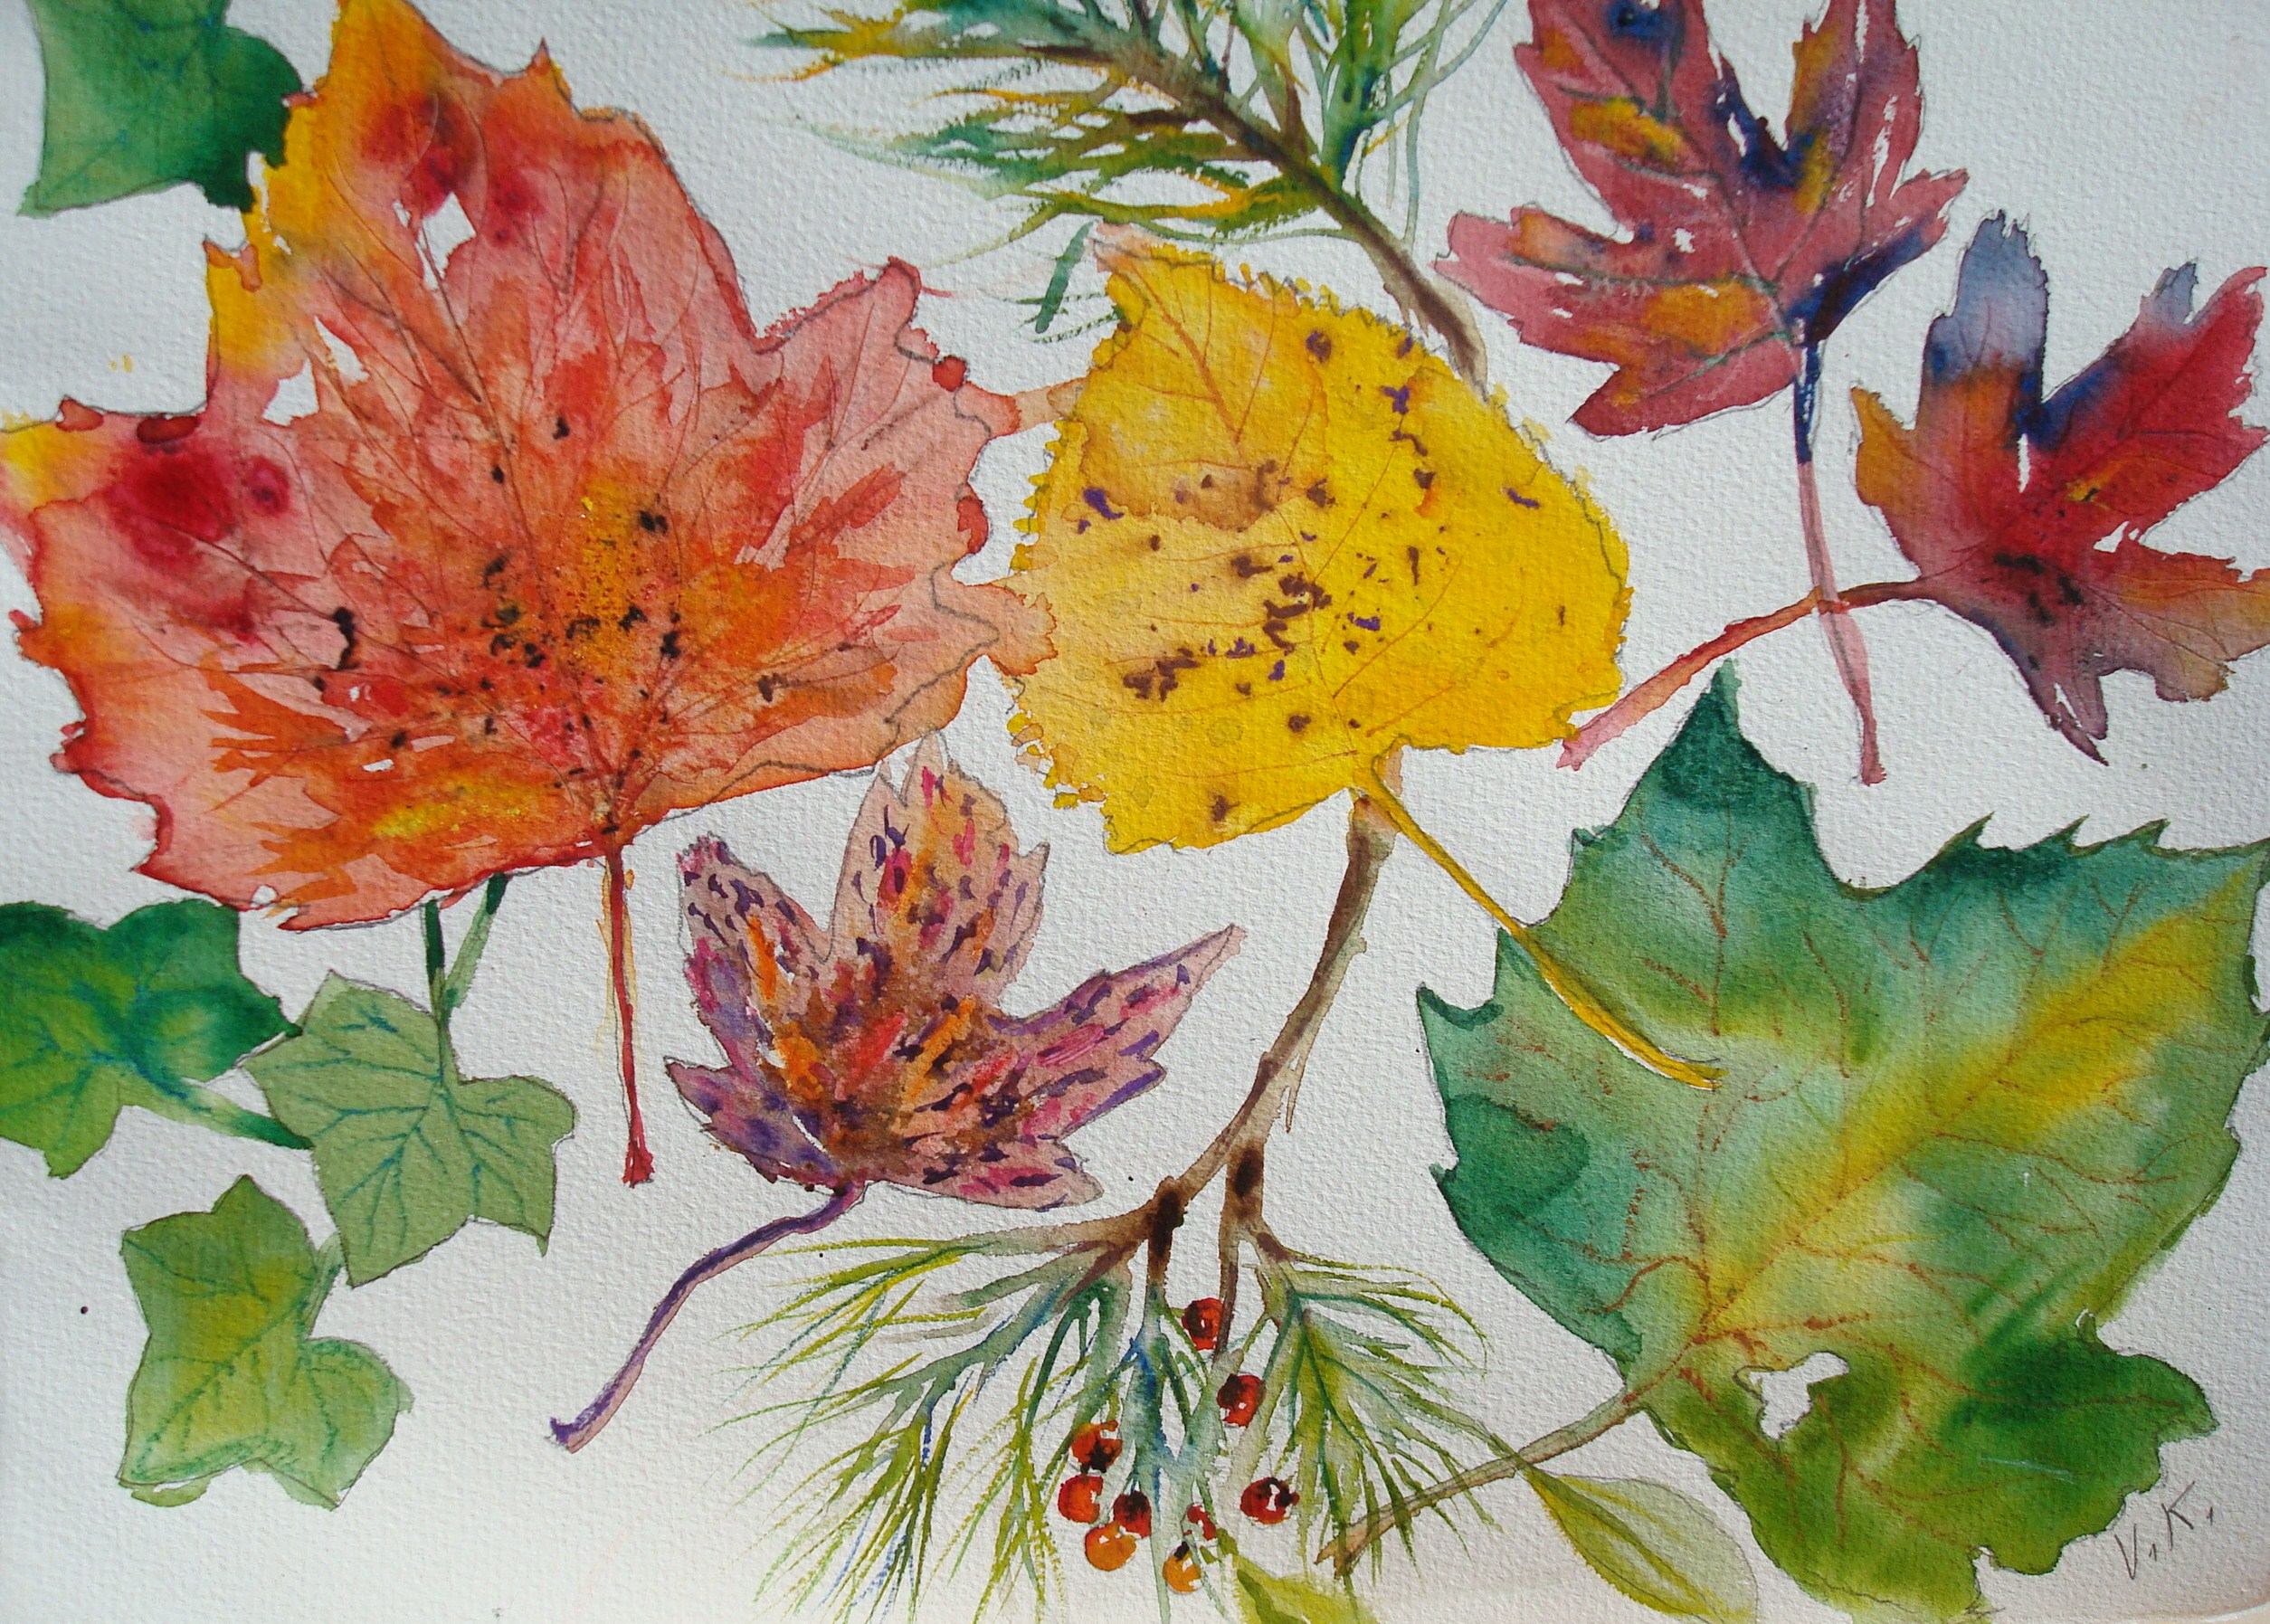 How to Paint Fall Leaves in Watercolor: 7 Steps - wikiHow